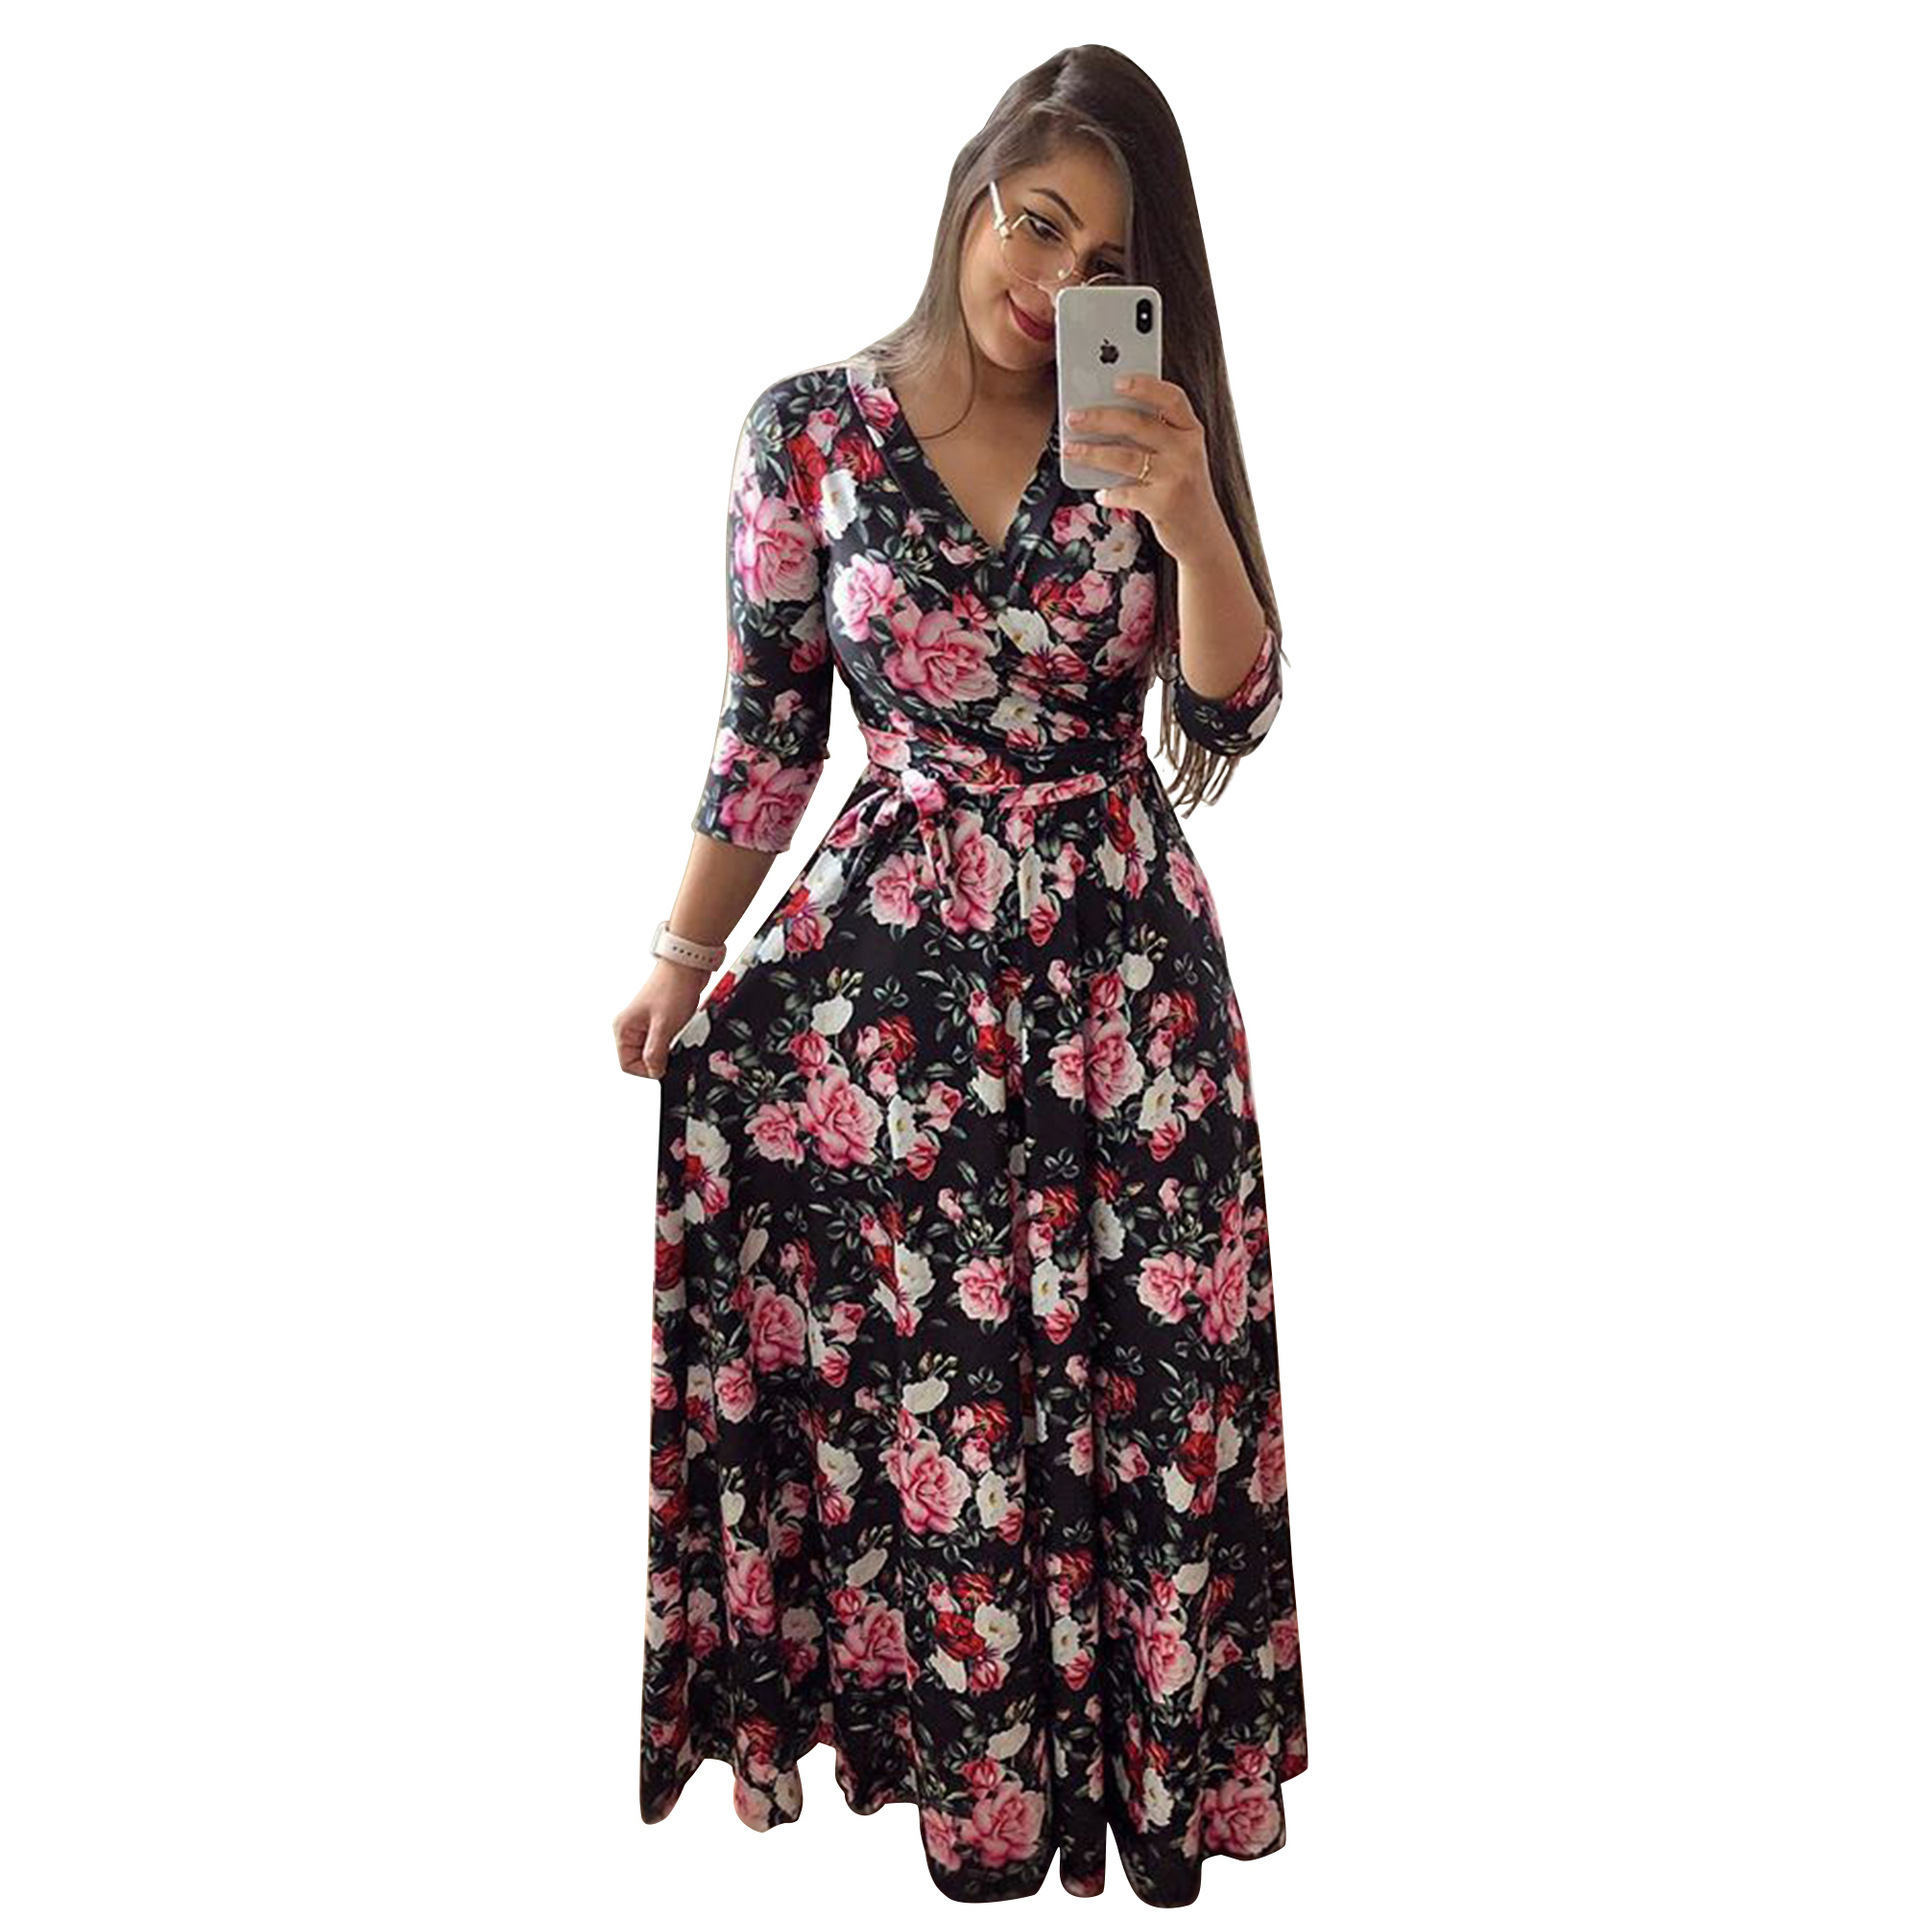 Hc0a73db08a394b58a13f1fa7ba6f1f36X - Oufisun Spring Sexy Deep V Neck Women's Dress Bohemia Tunic Maxi Dresses Elegant Vintage Flowers Print Dress Vestidos Plus Size